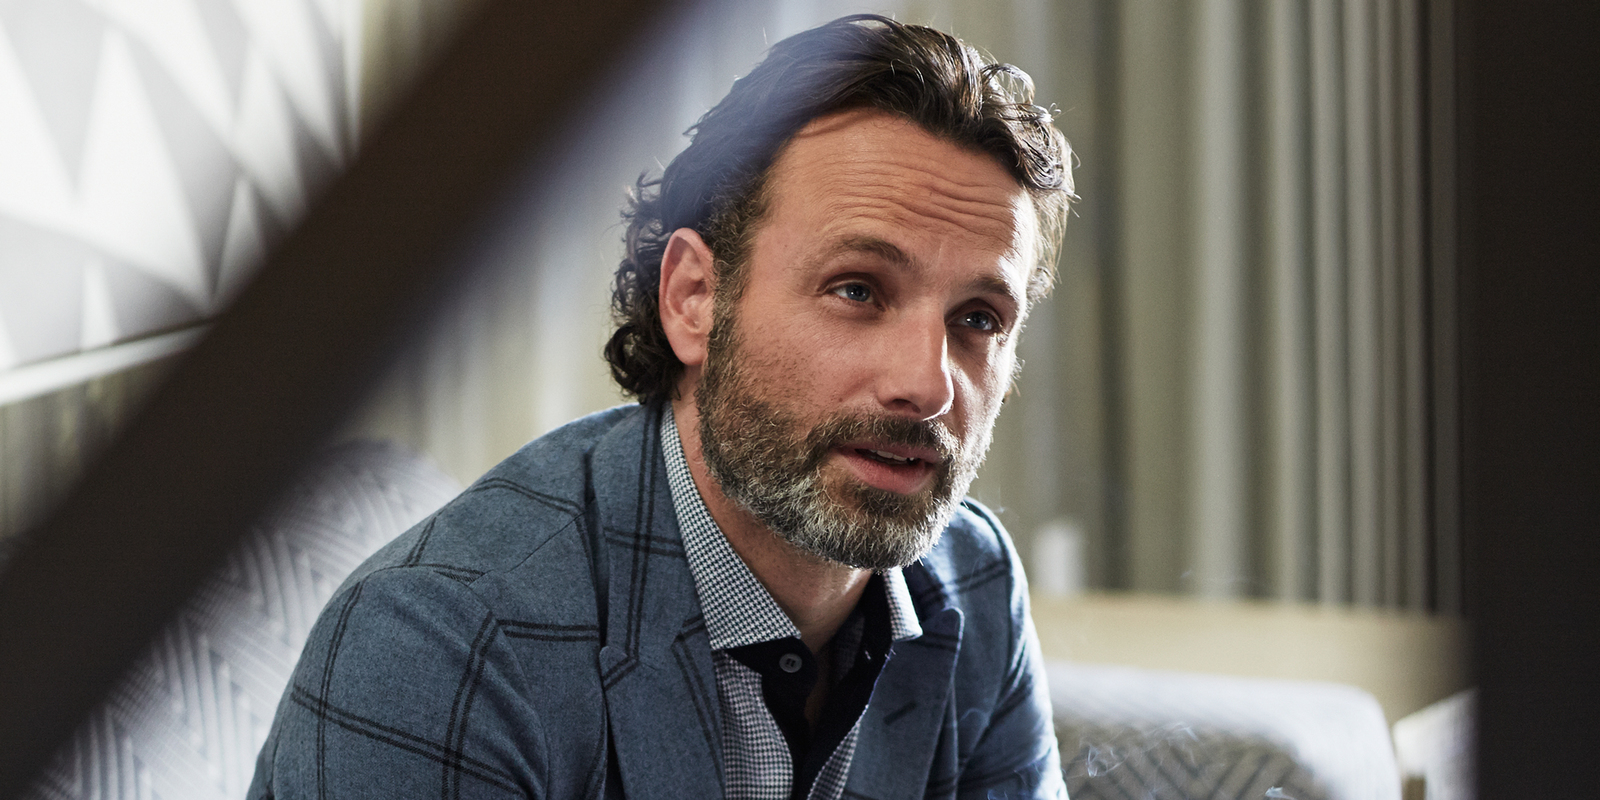 The Walking Dead's Andrew Lincoln Style Special